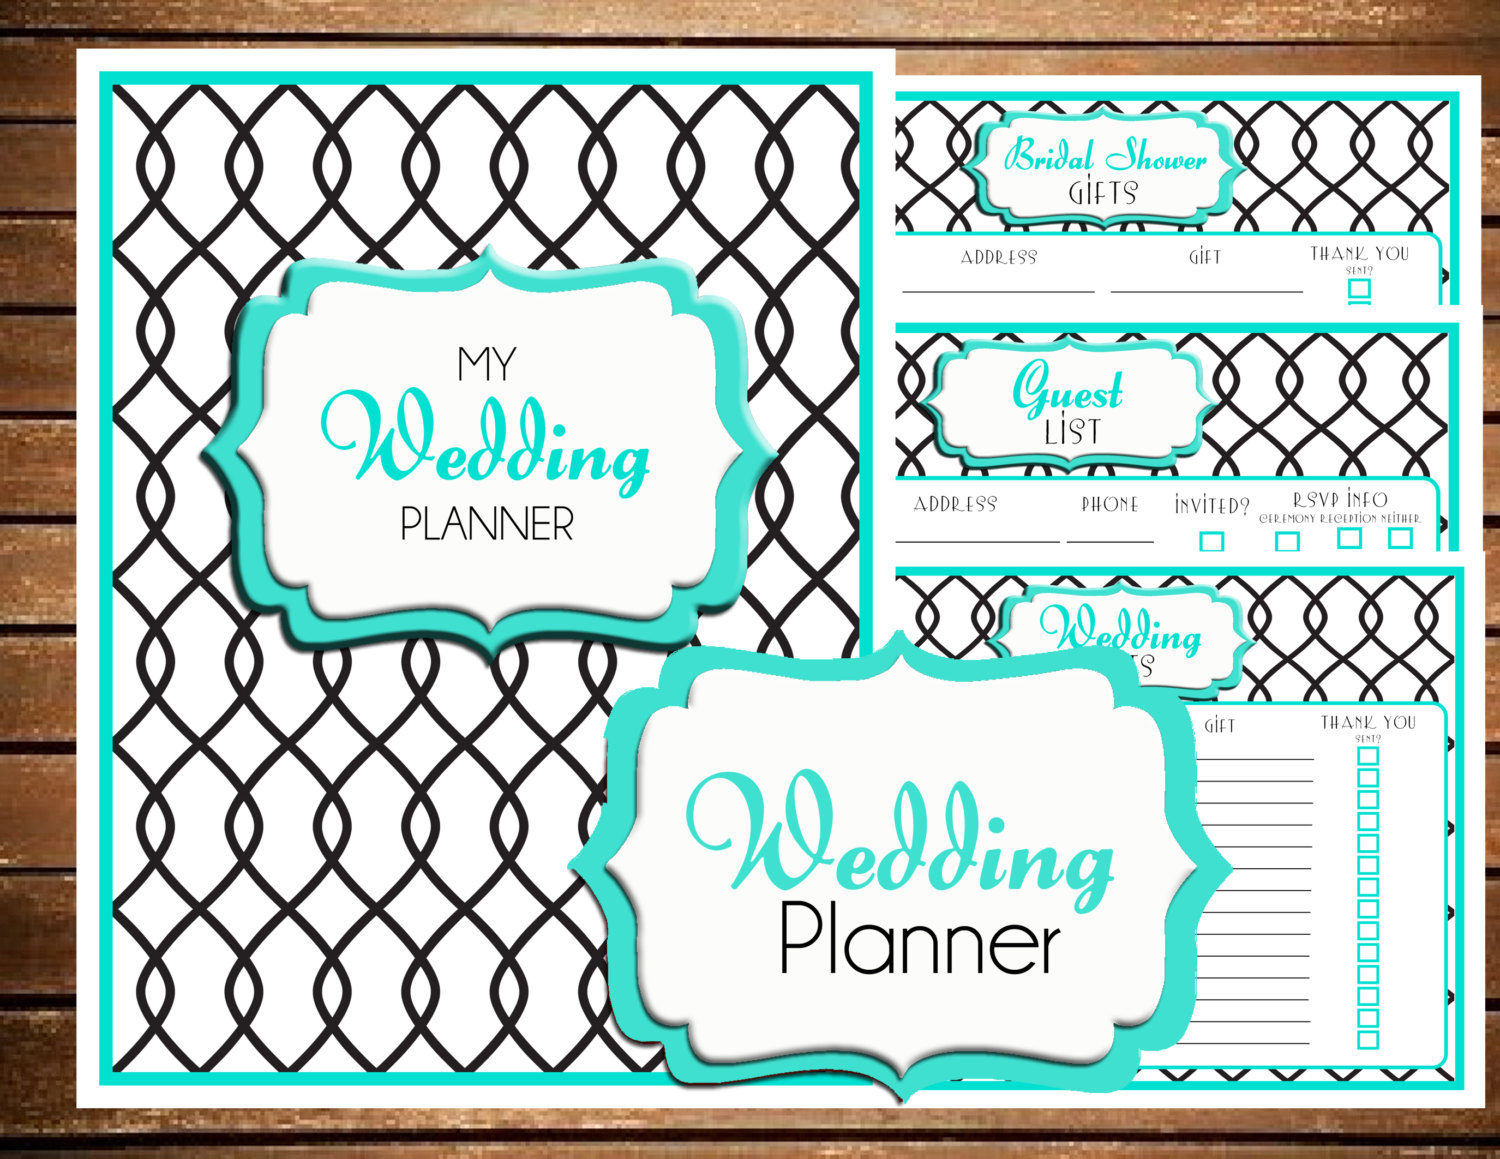 Wedding Planner Printable Samples